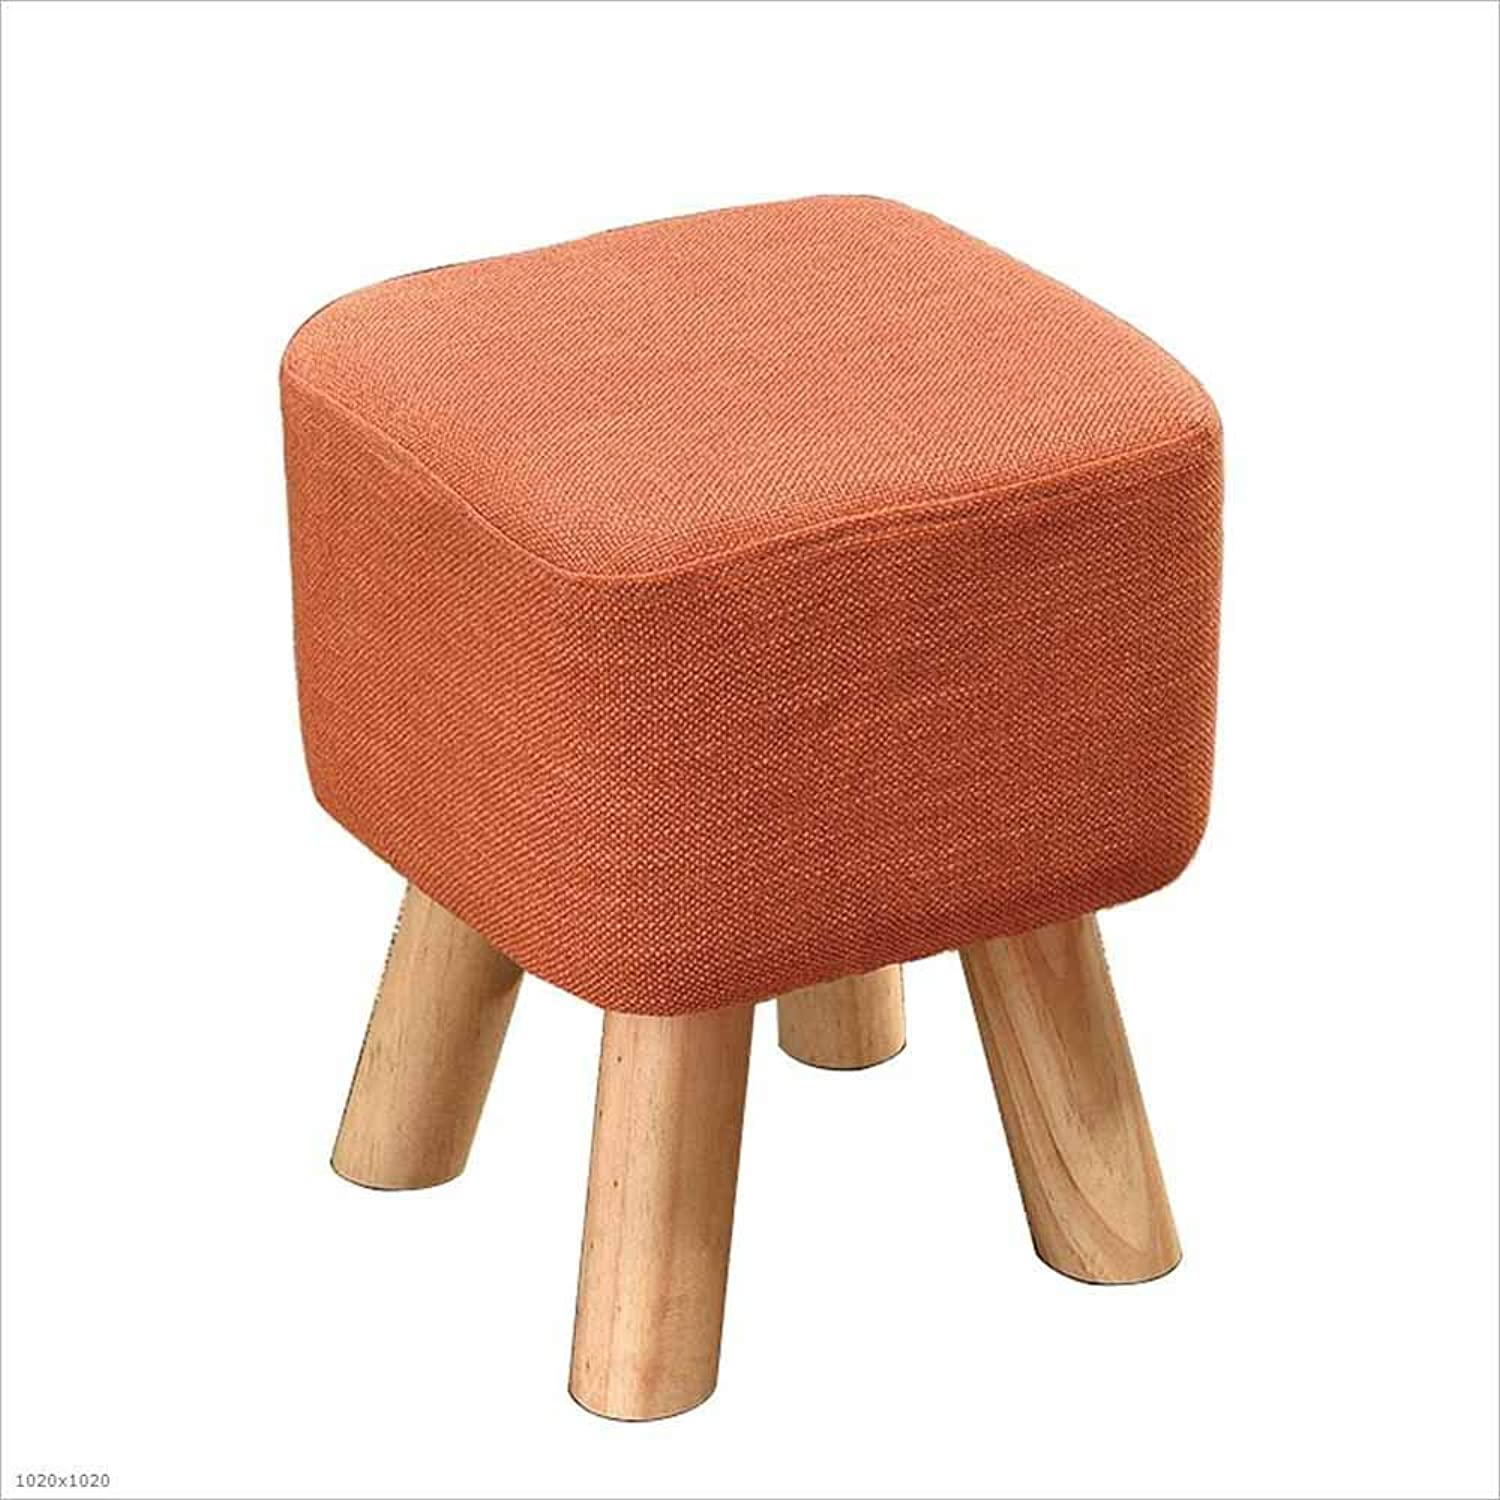 Sofa Stool Fabric Solid Wood Heightening Stool Living Room Bedroom Change shoes Bench Stool 28×28×34Cm, 2